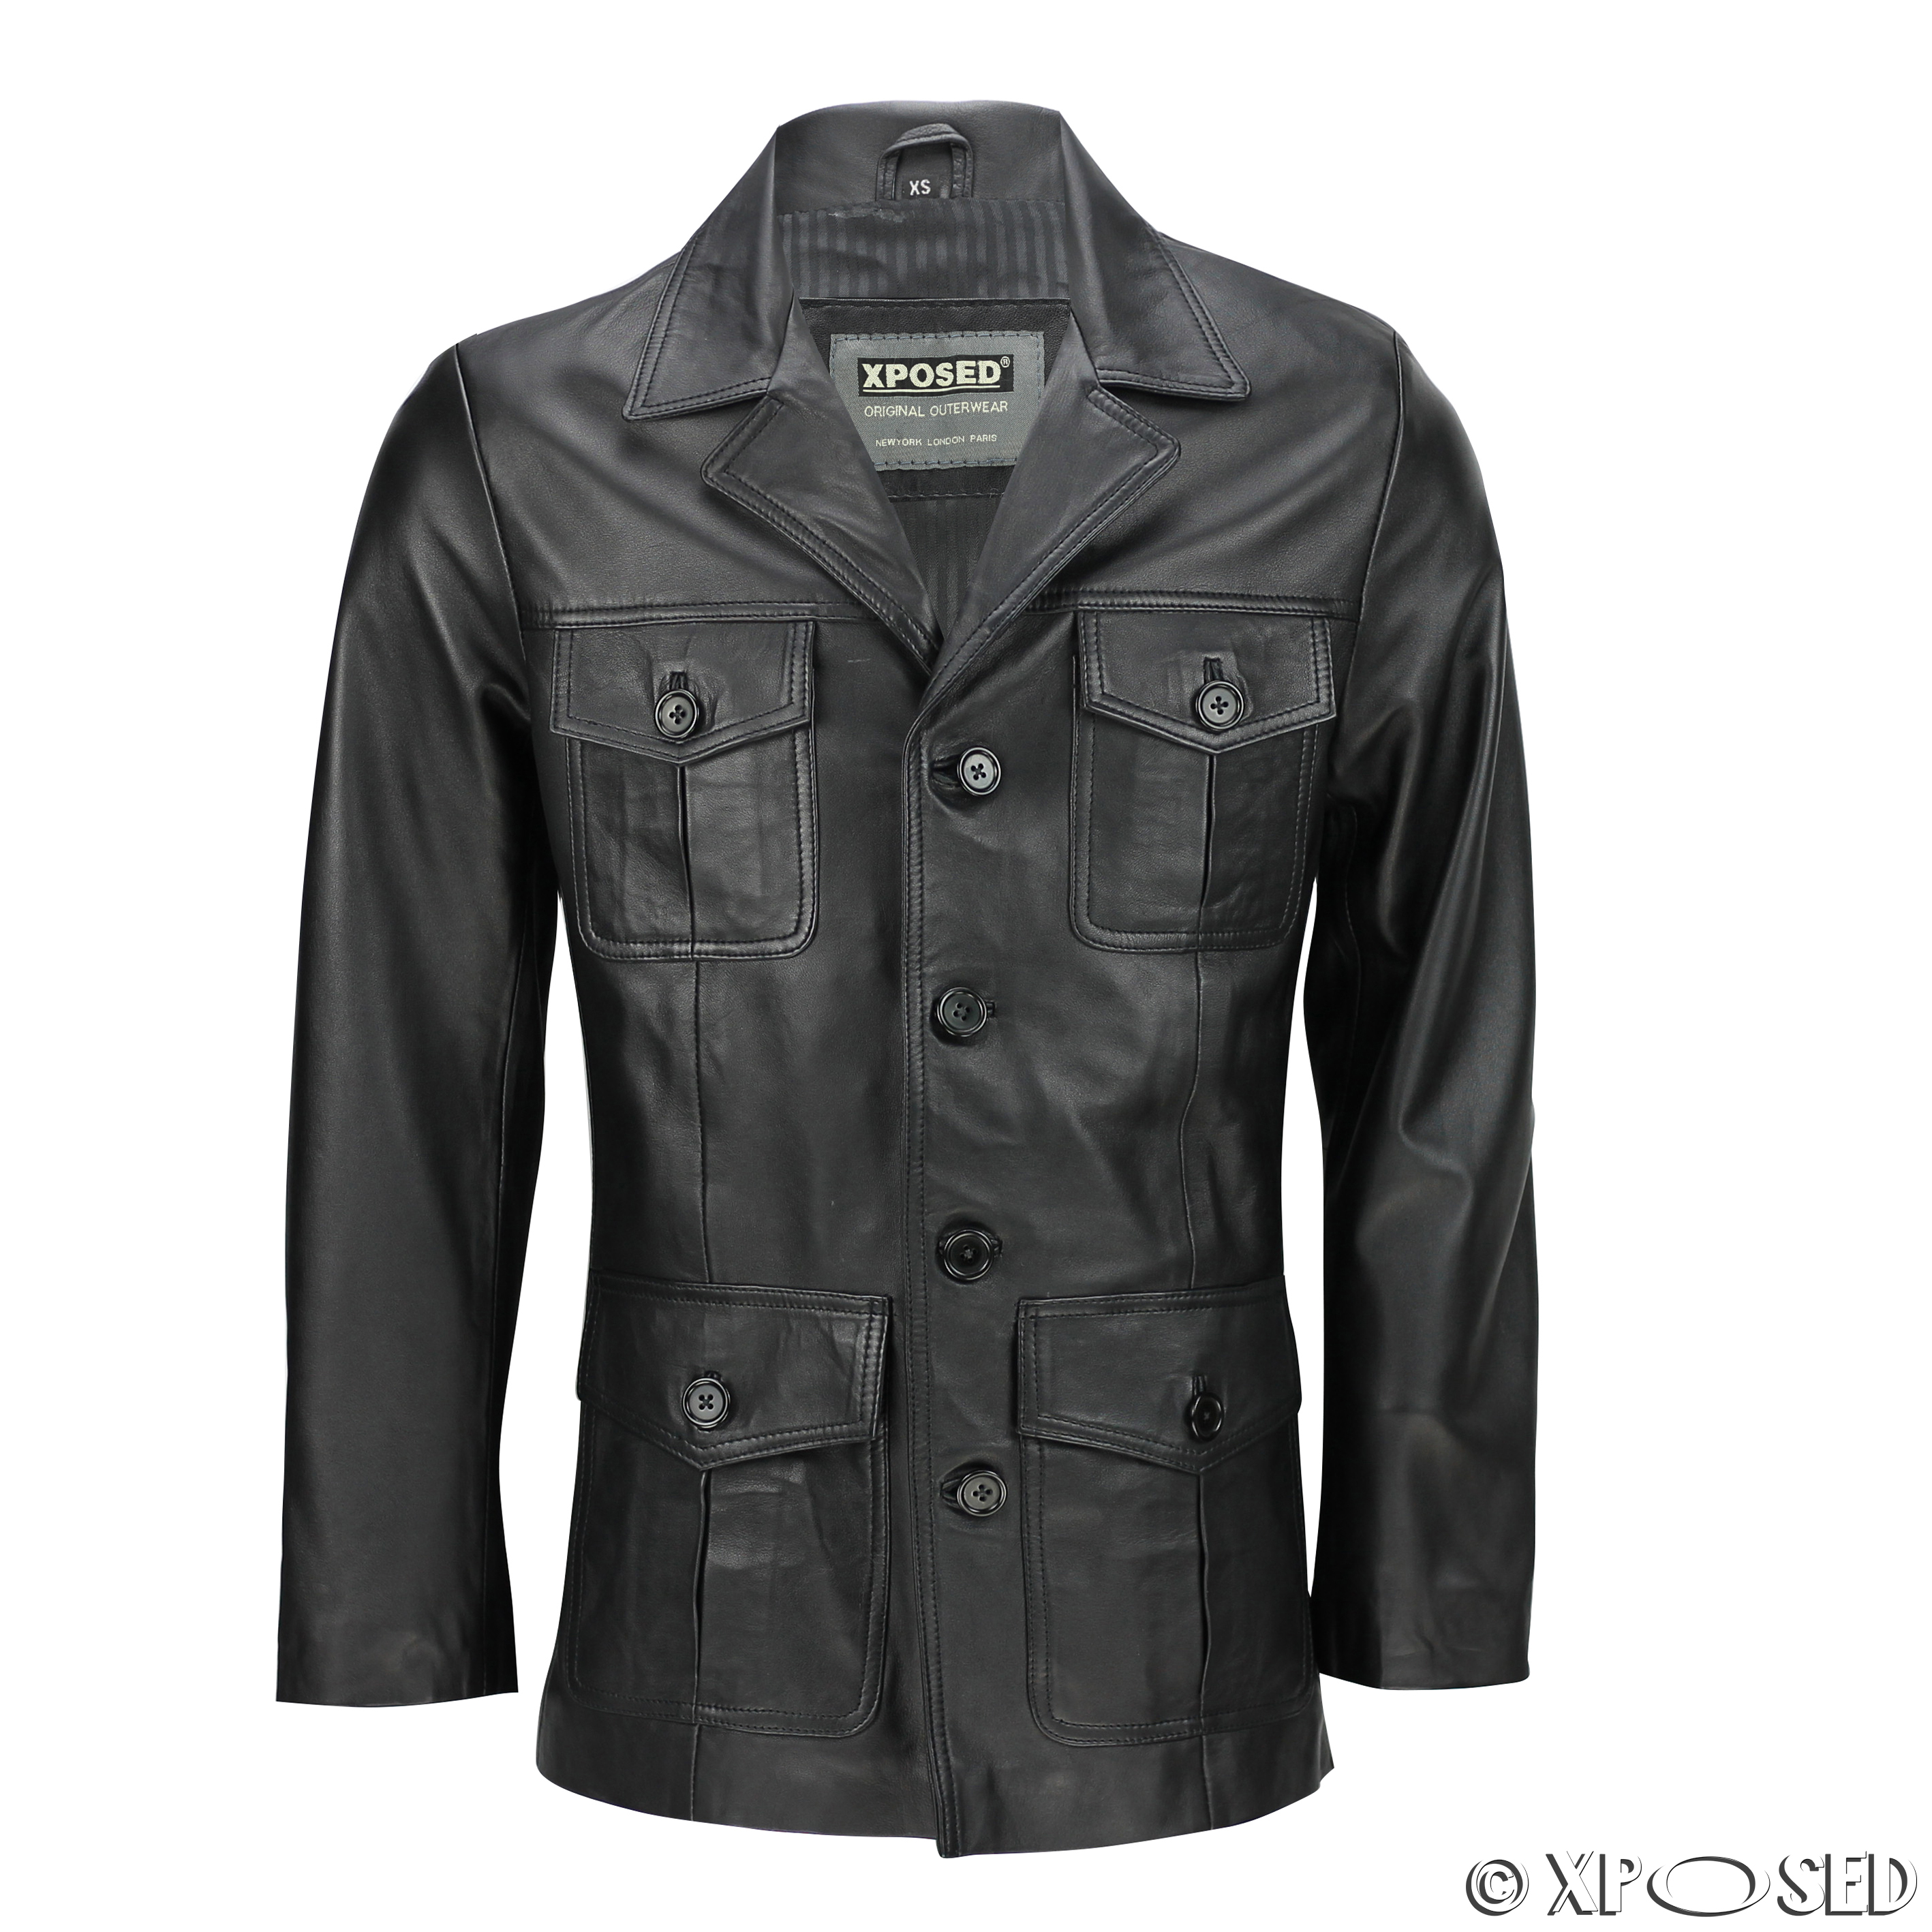 Find great deals on eBay for military style jacket mens. Shop with confidence.